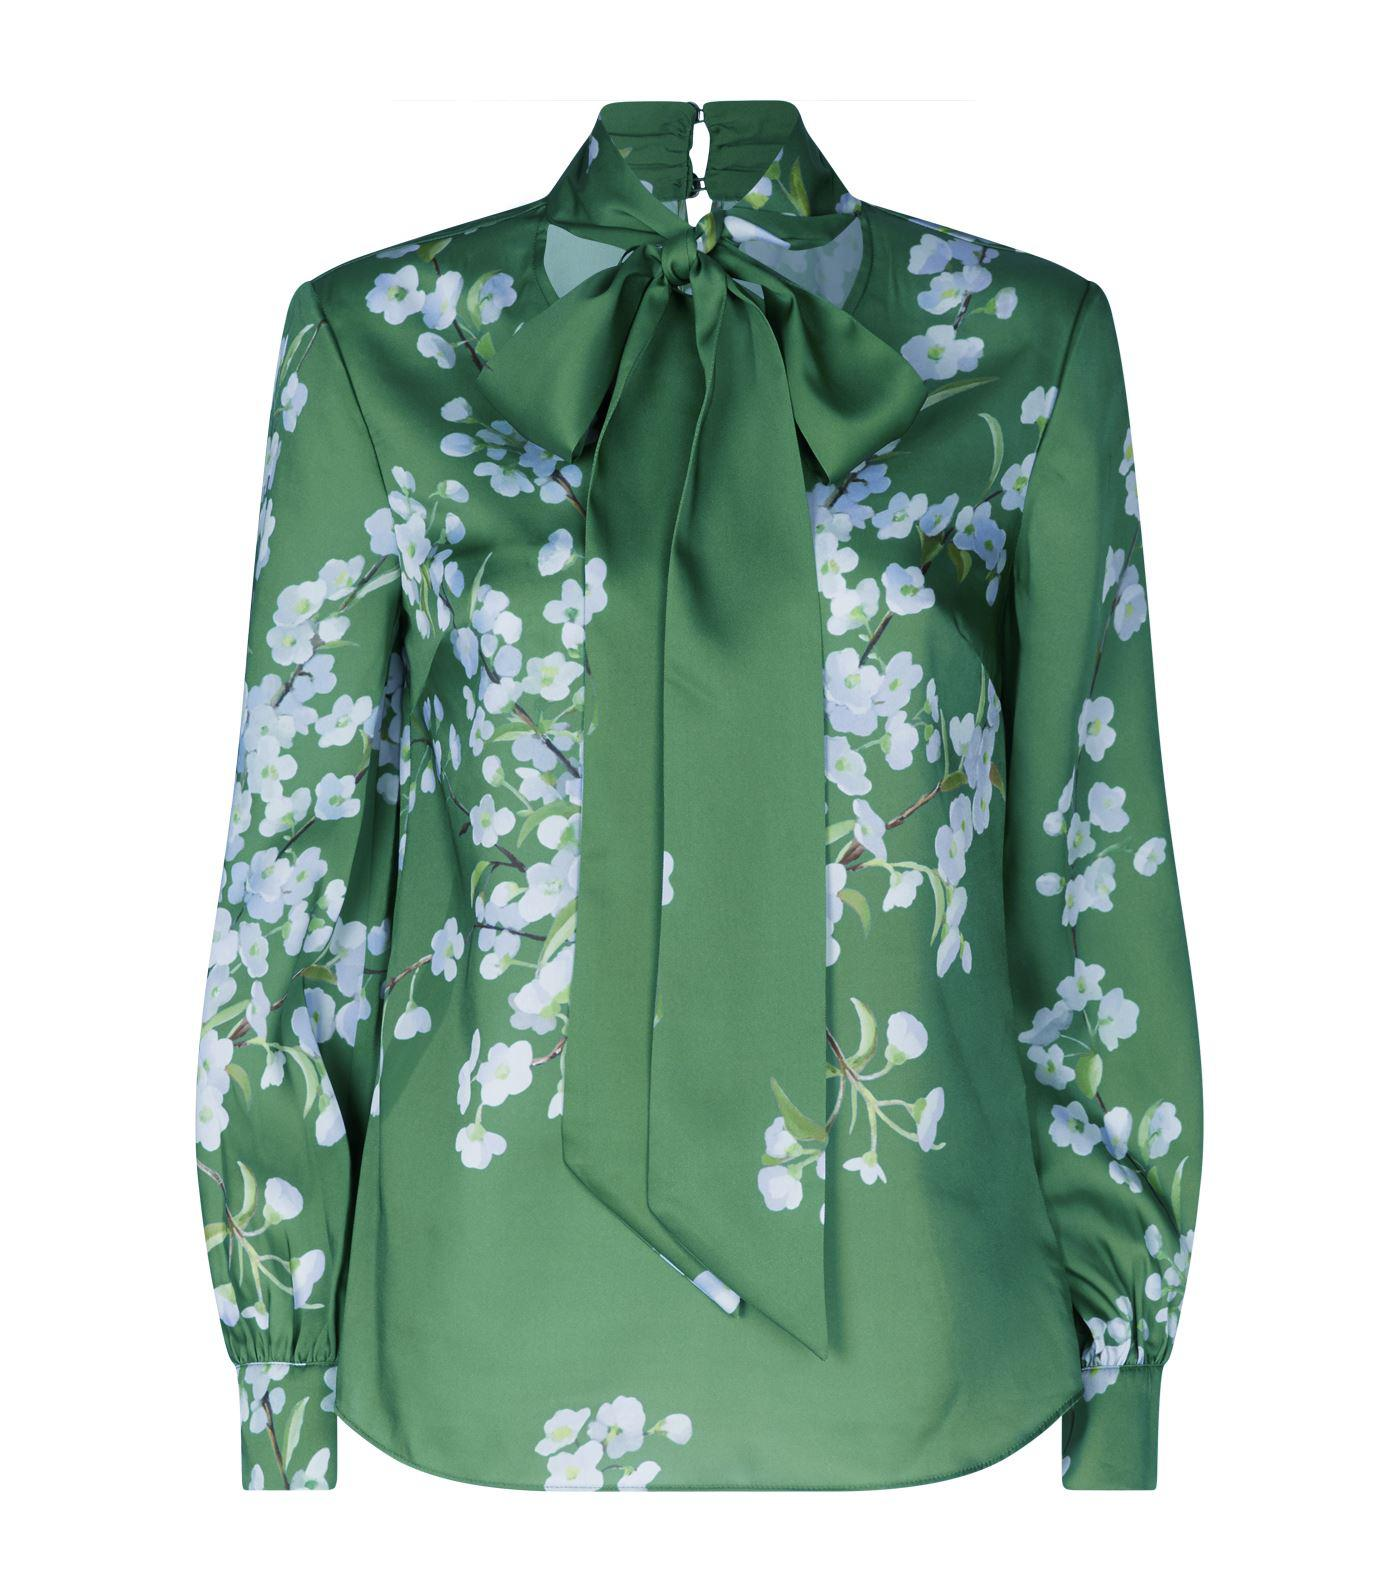 99feabc3b1687 Lyst - Ted Baker Johsie Graceful Ruffle Full Sleeve Top in Green ...